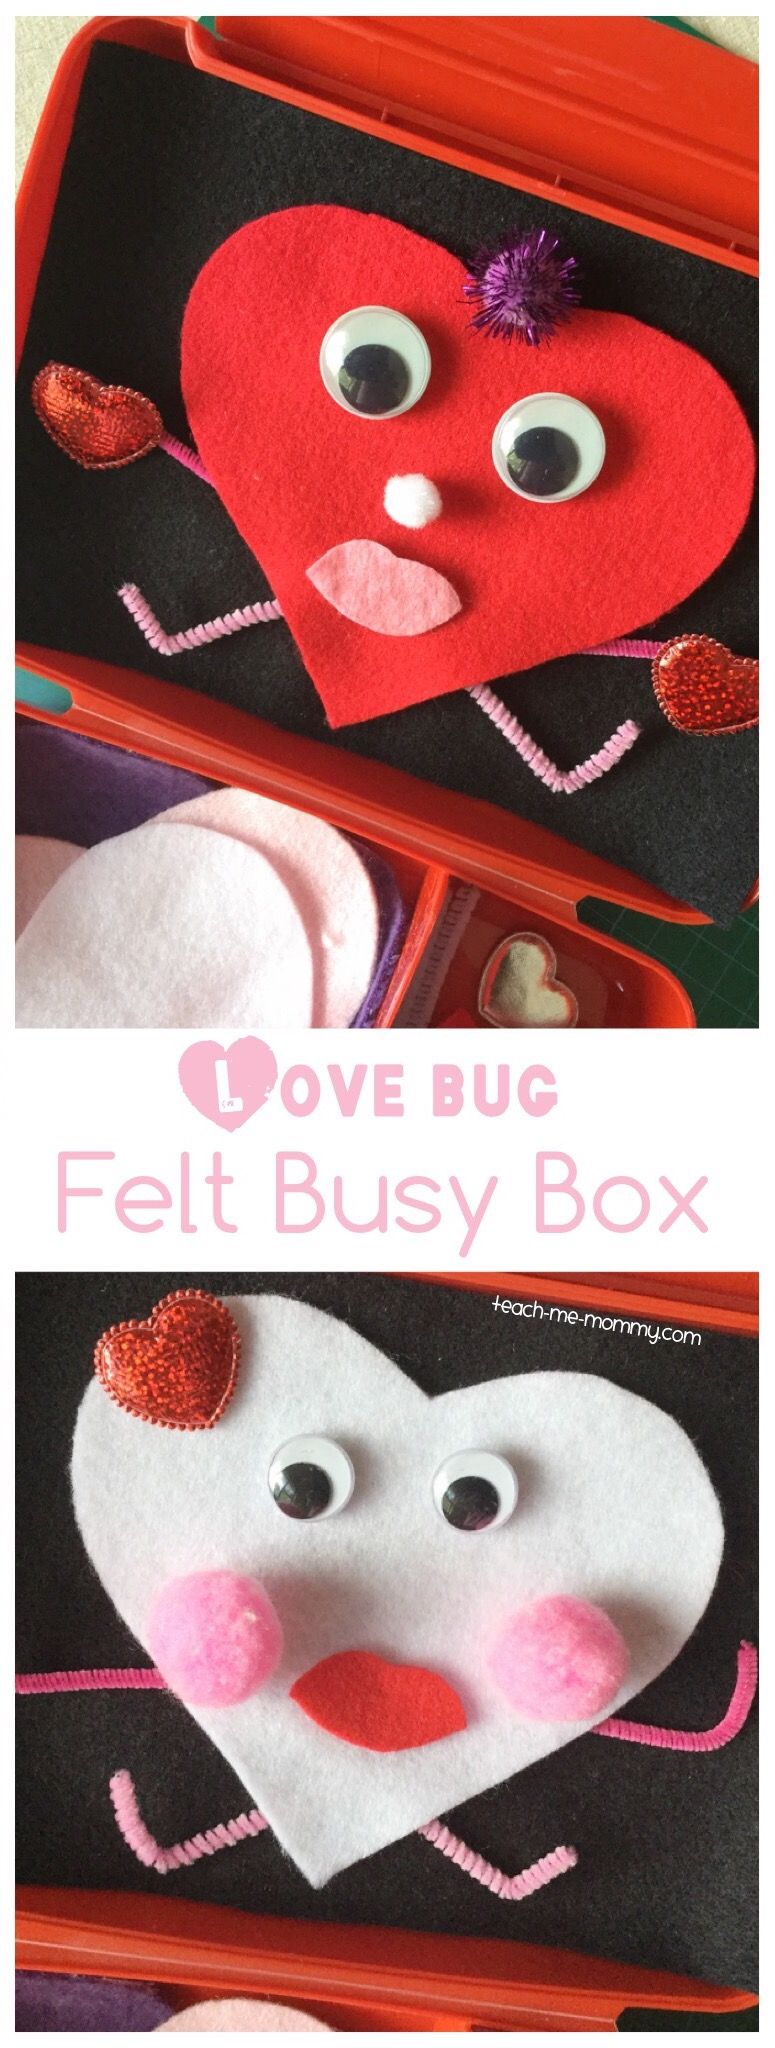 Love bug busy box